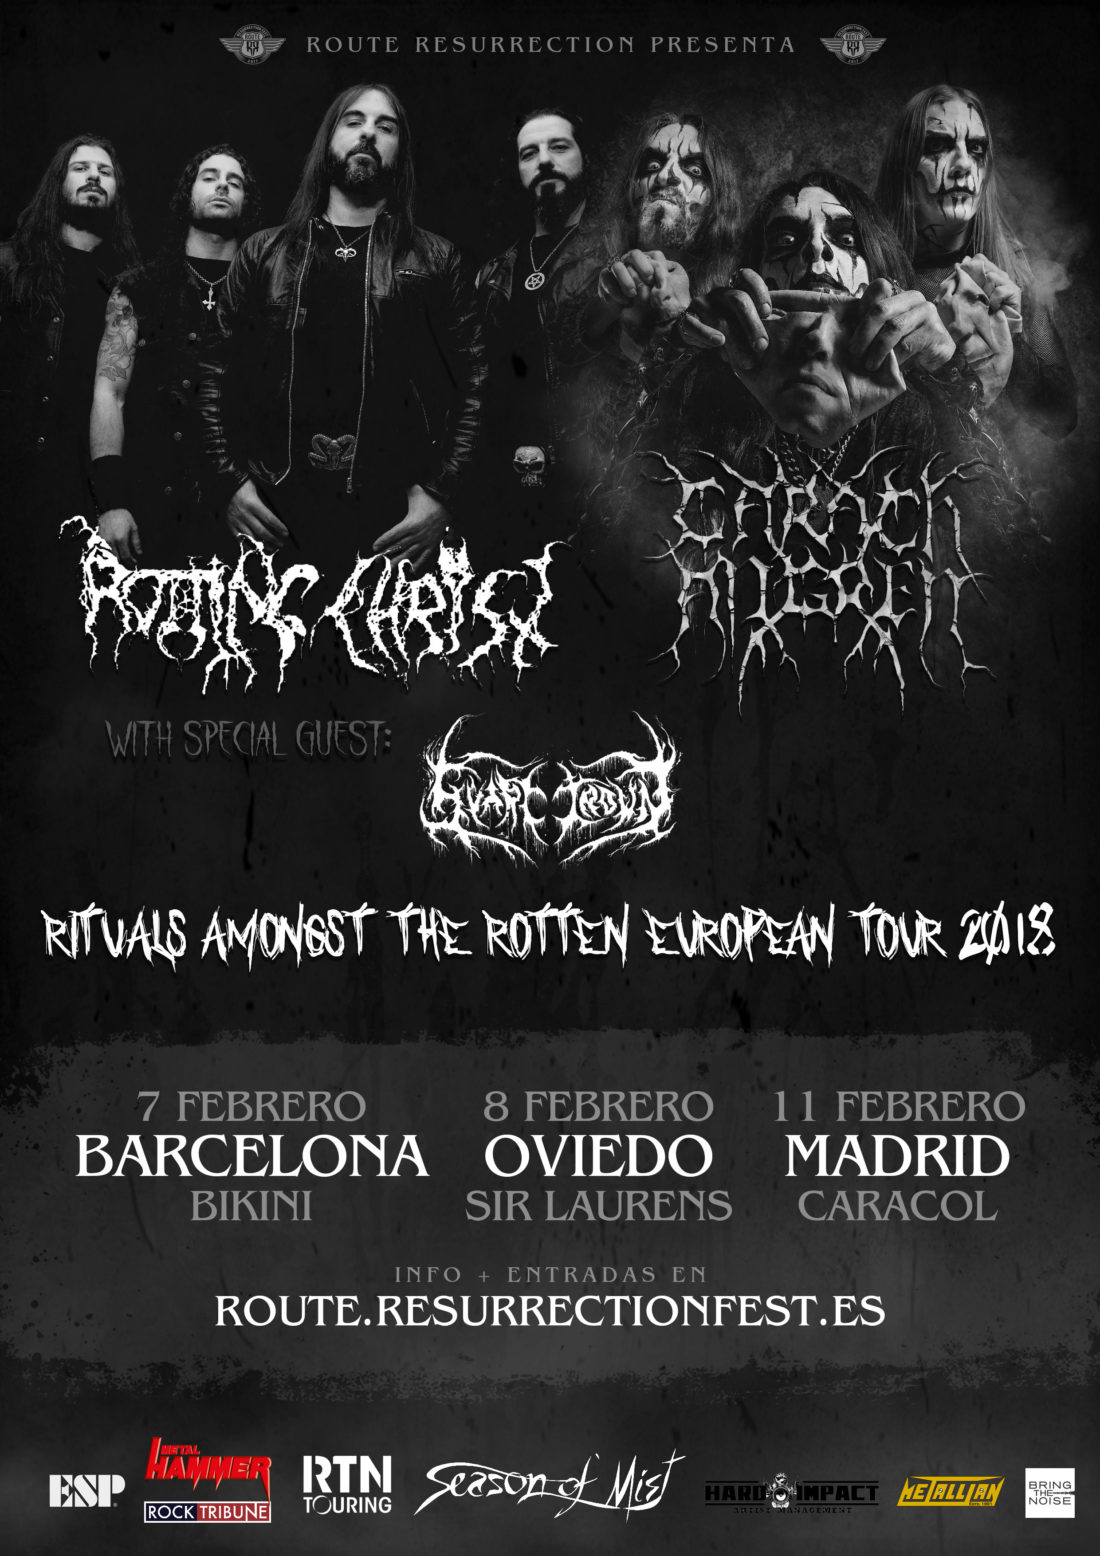 Route-Resurrection-2018-Rotting-Christ-Carach-Angren-Poster-1100x1556